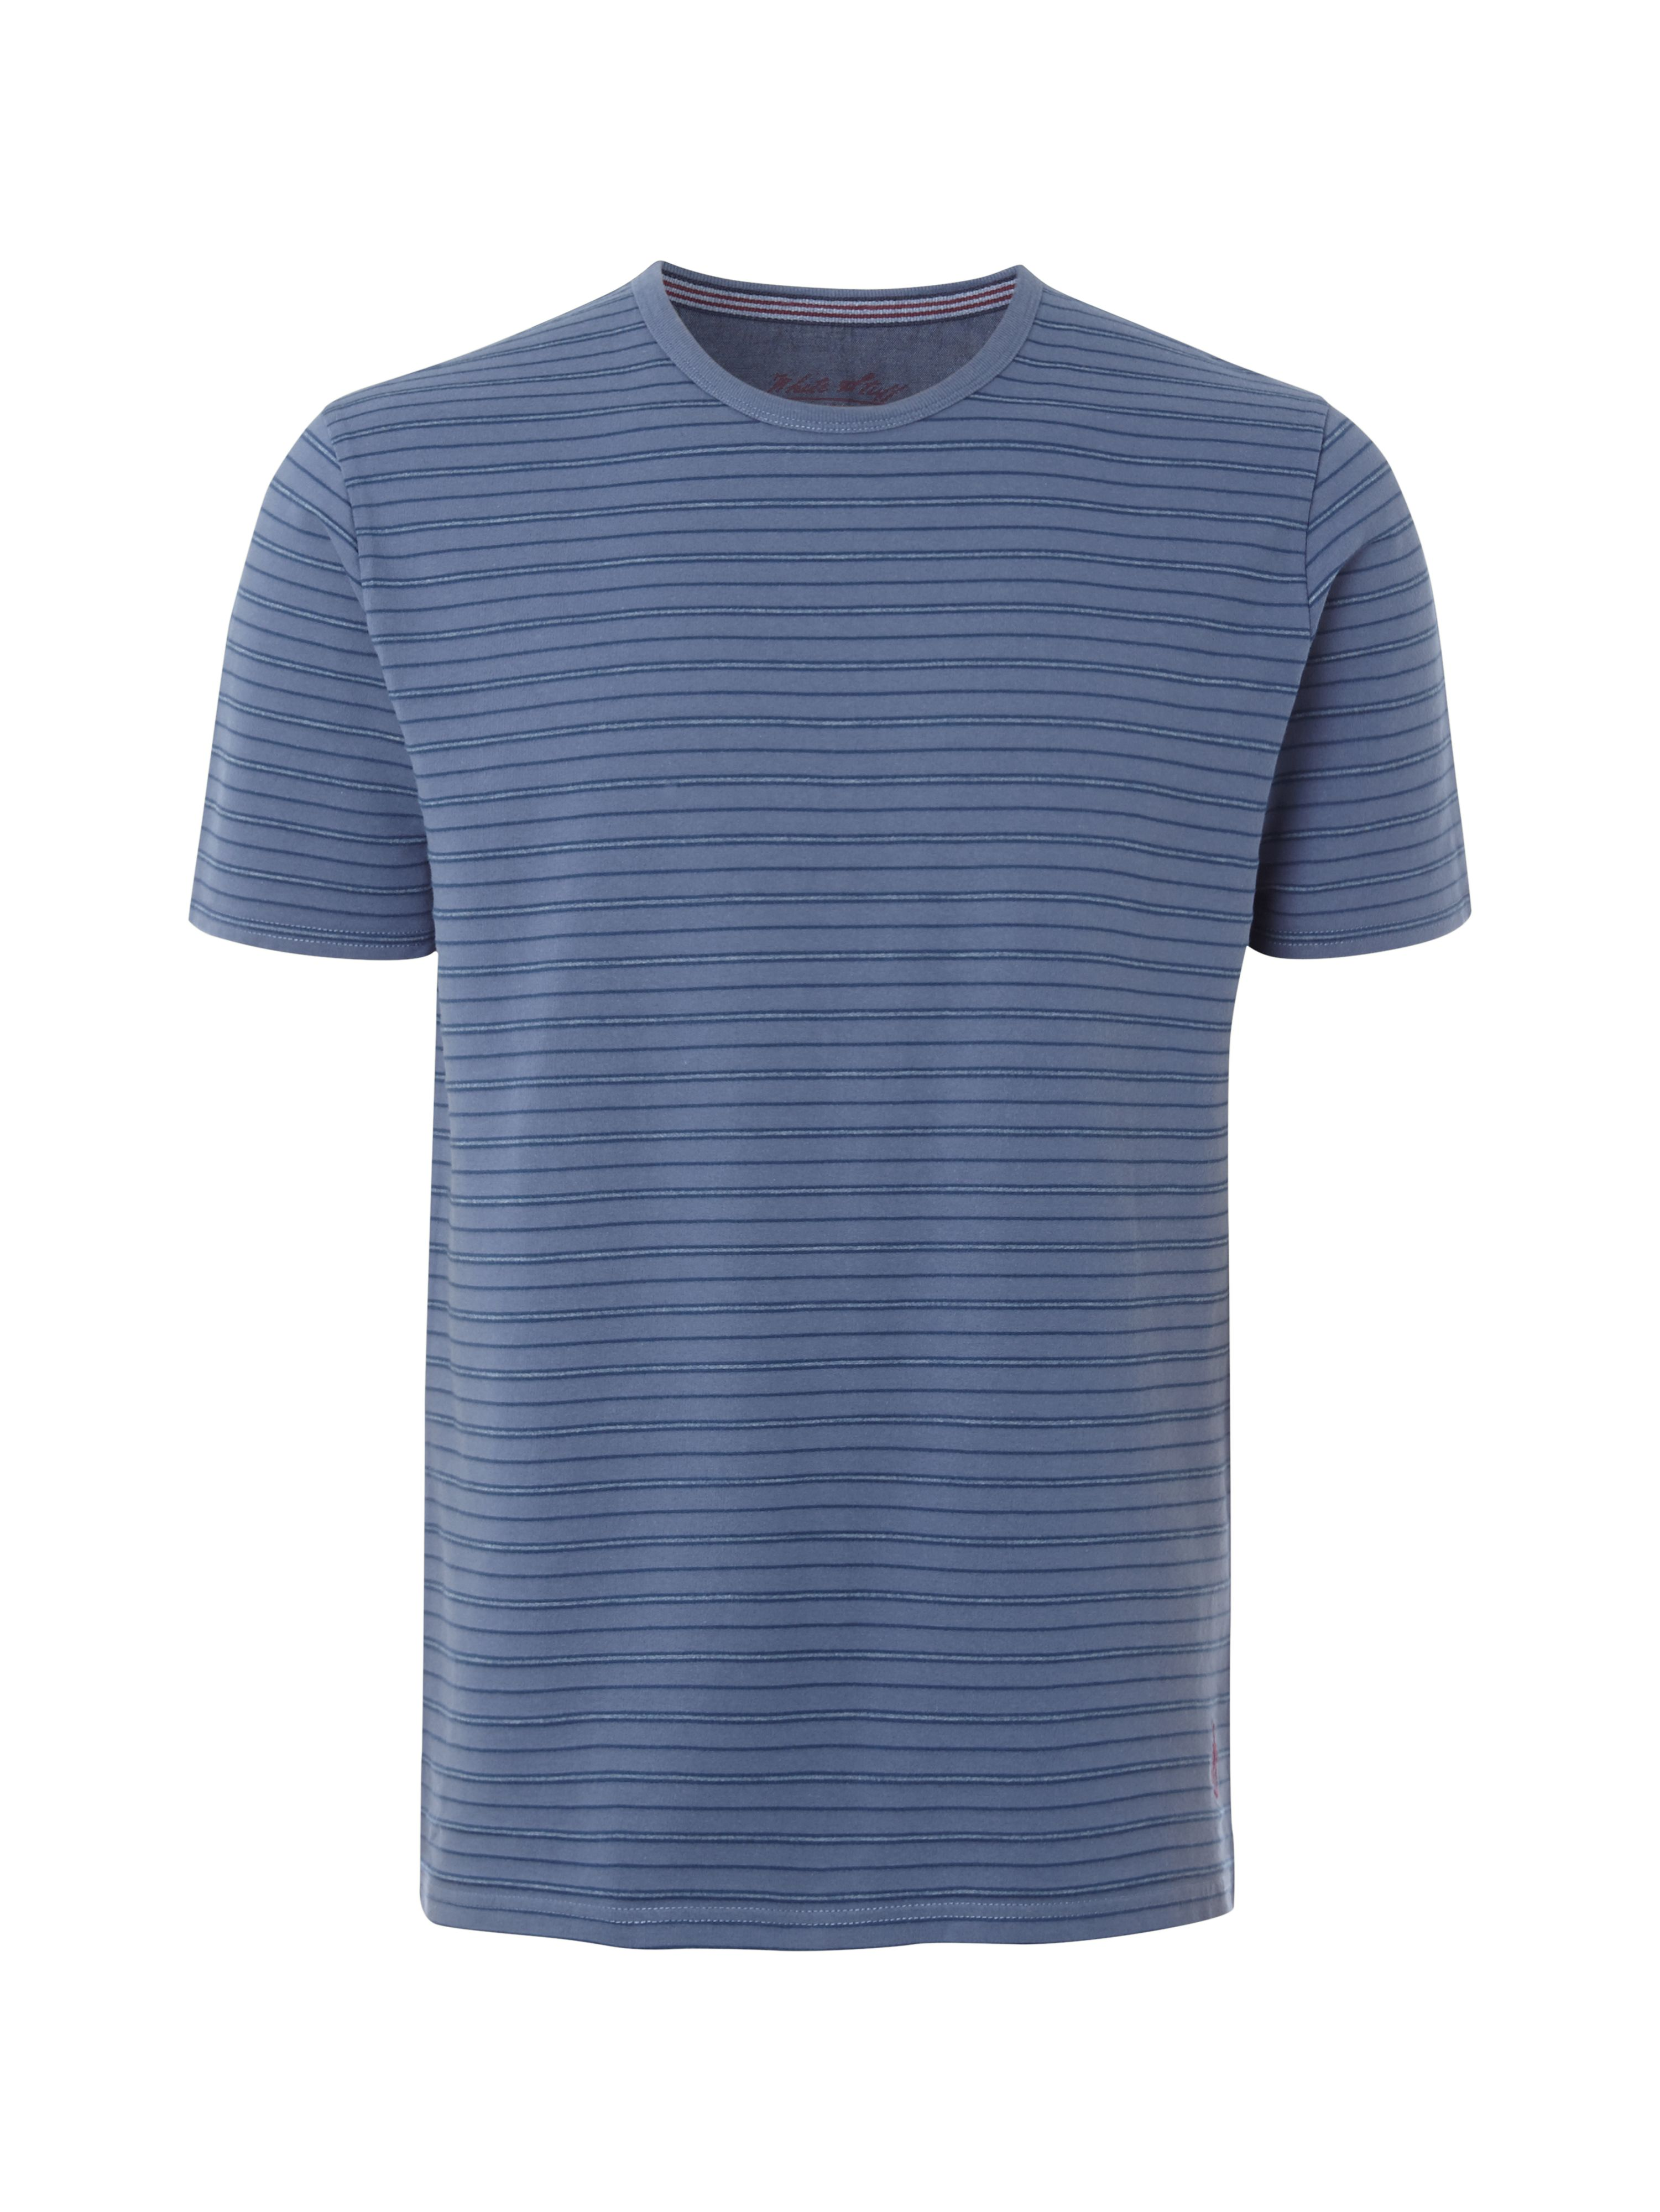 Fade stripe t-shirt